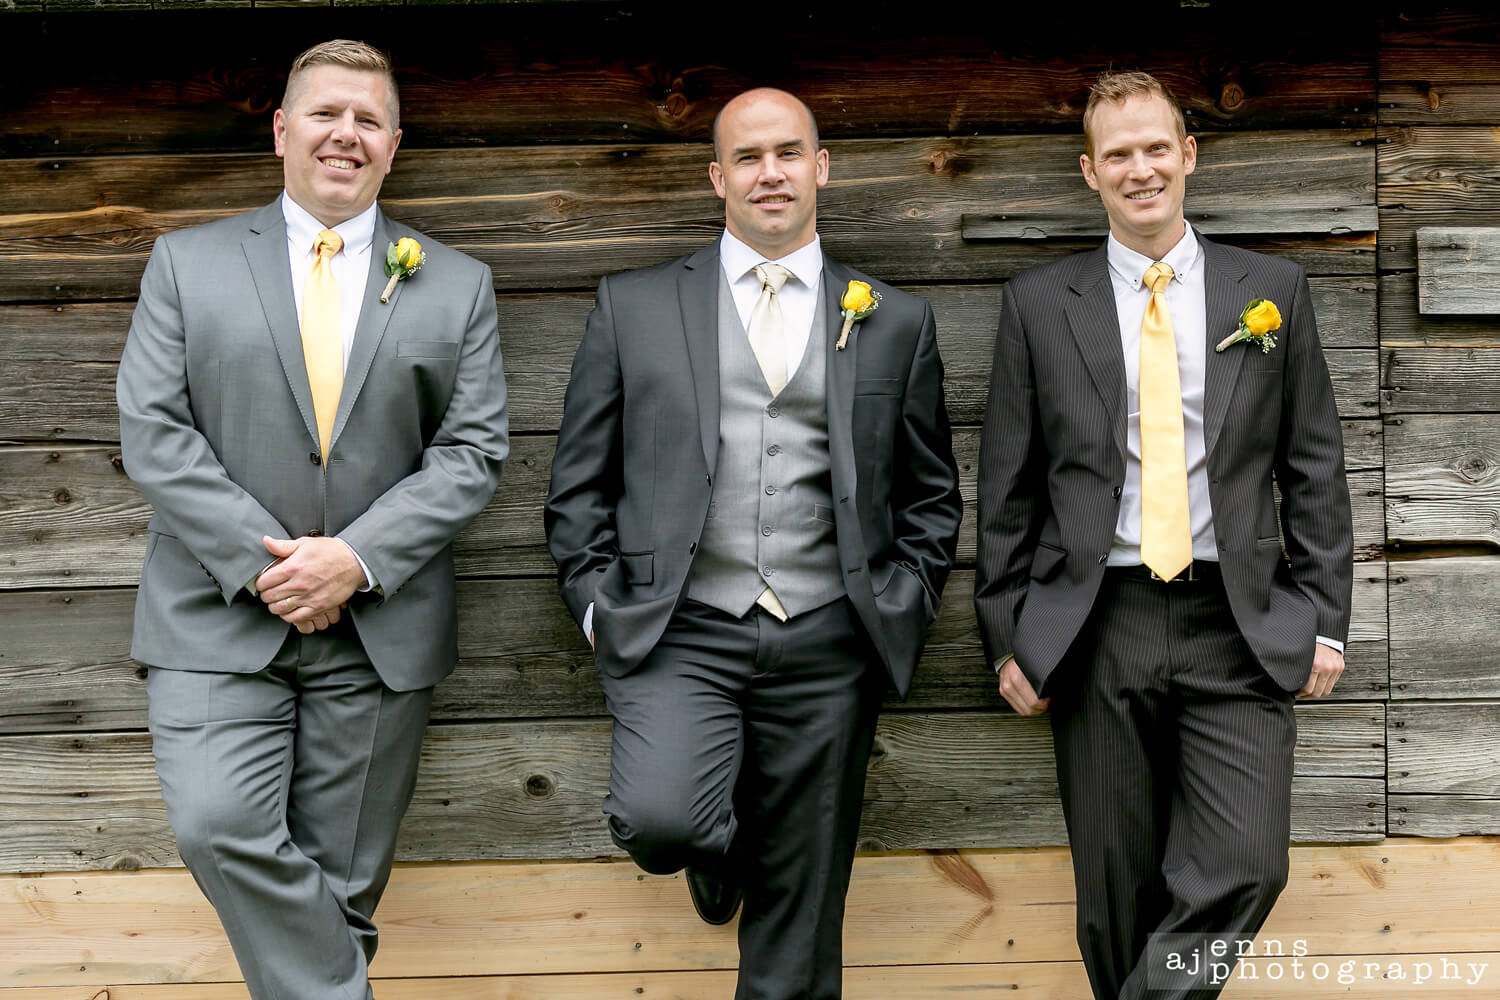 Scott and his boys leaning against a wood wall